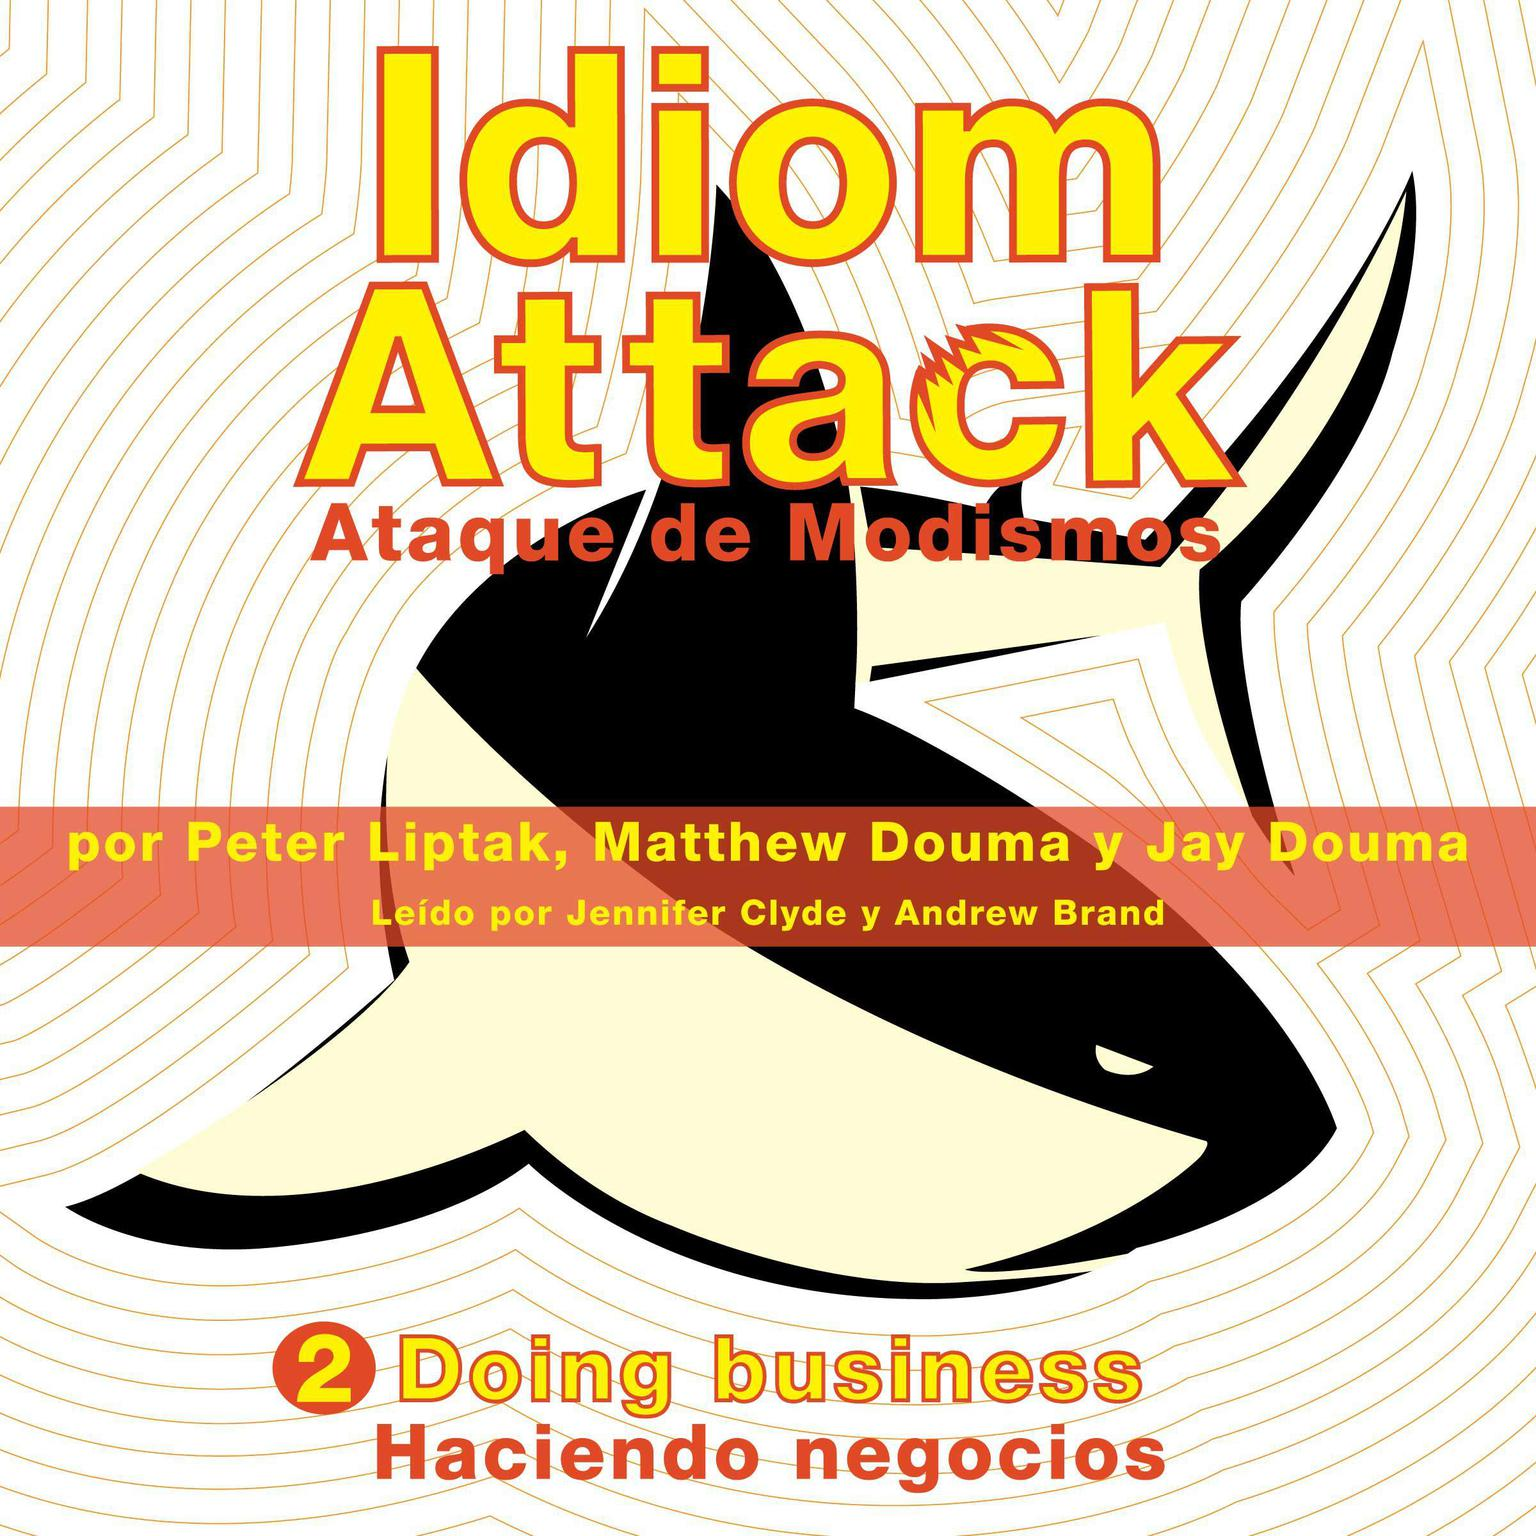 Printable Idiom Attack Vol. 2: Doing Business (Spanish Edition): Ataque de Modismos 2 - Haciendo negocios Audiobook Cover Art